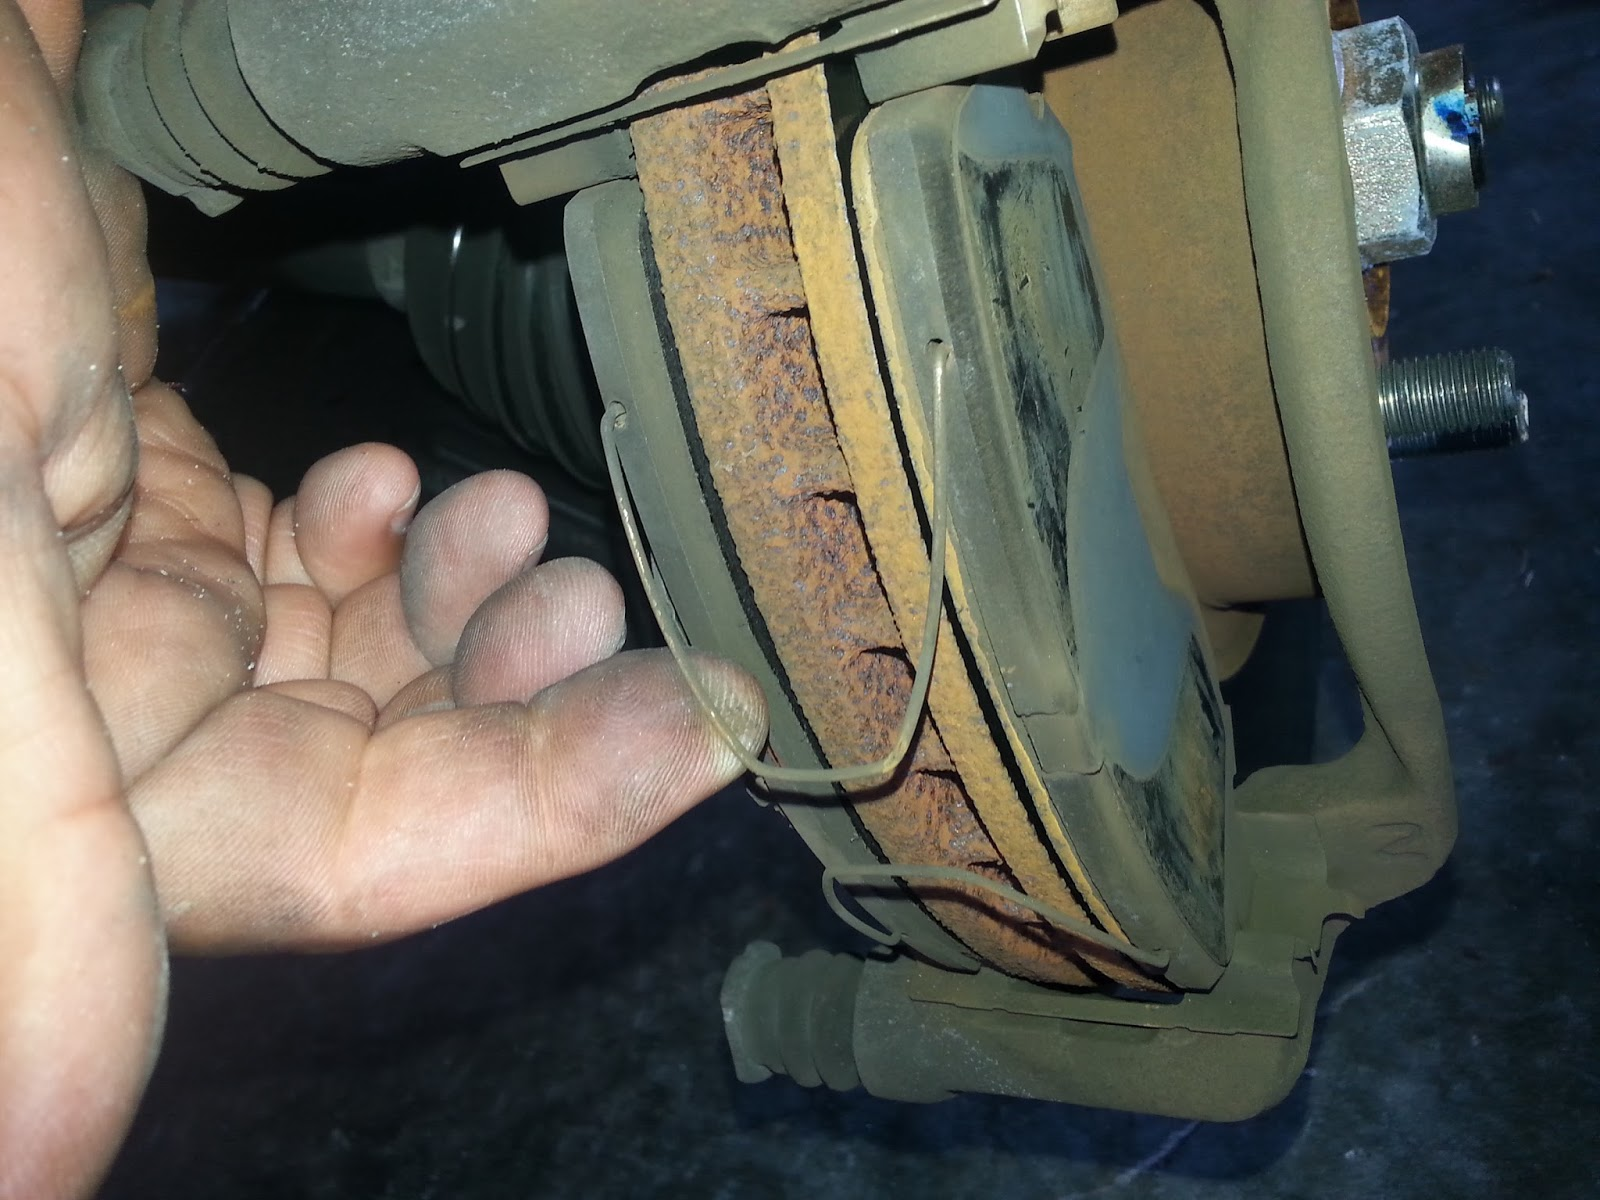 This is a diy for a 2000 honda crv front brakes with slotted rotors